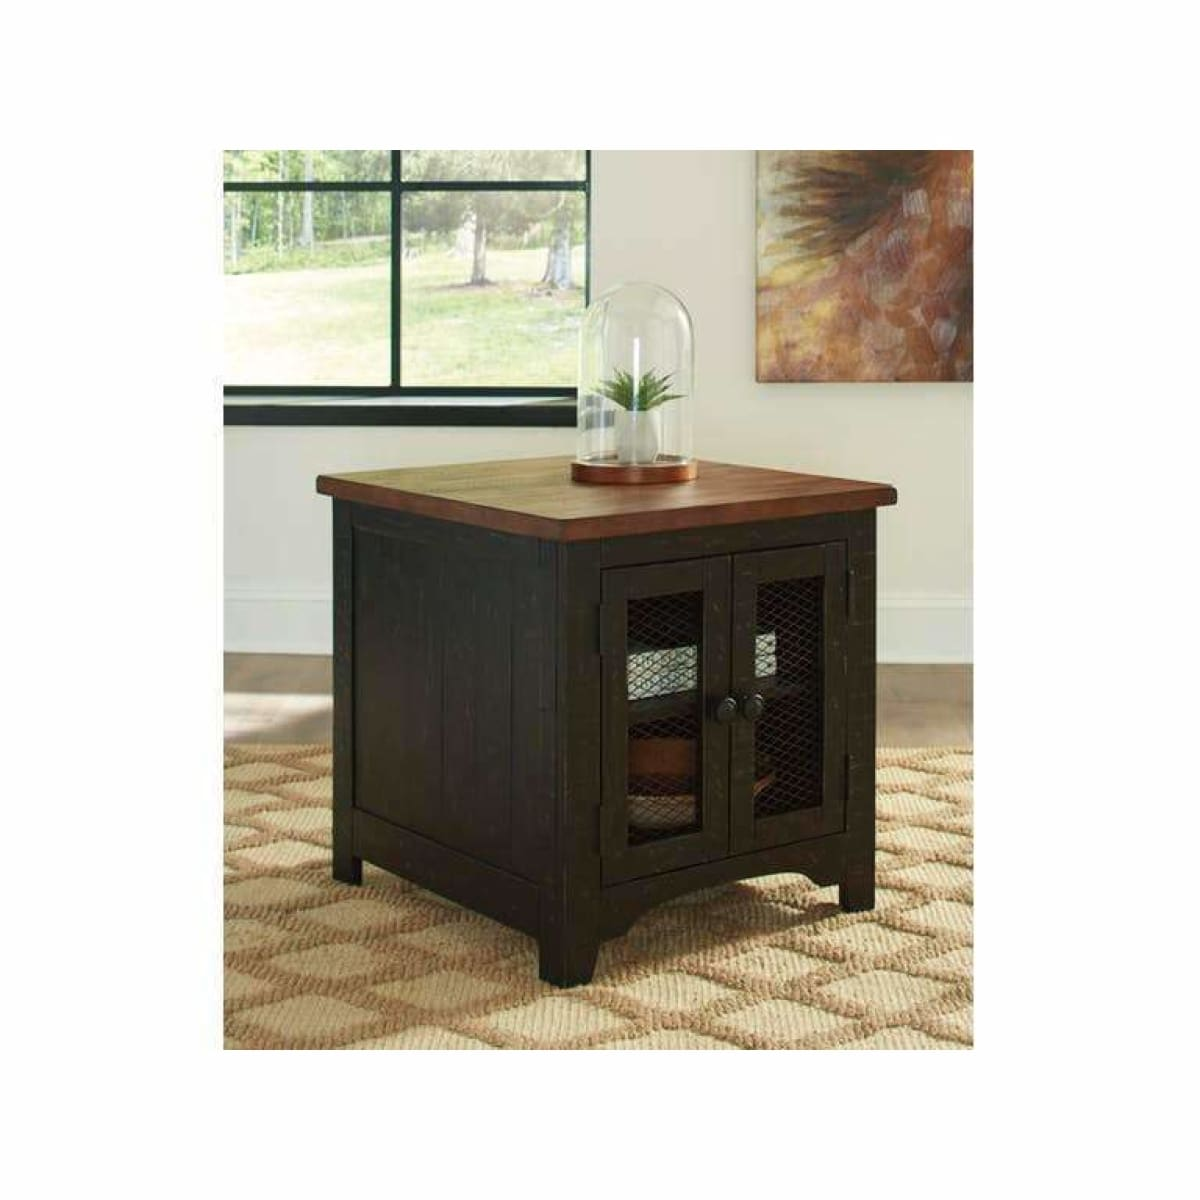 Valebeck End Table - END TABLE/SIDE TABLE